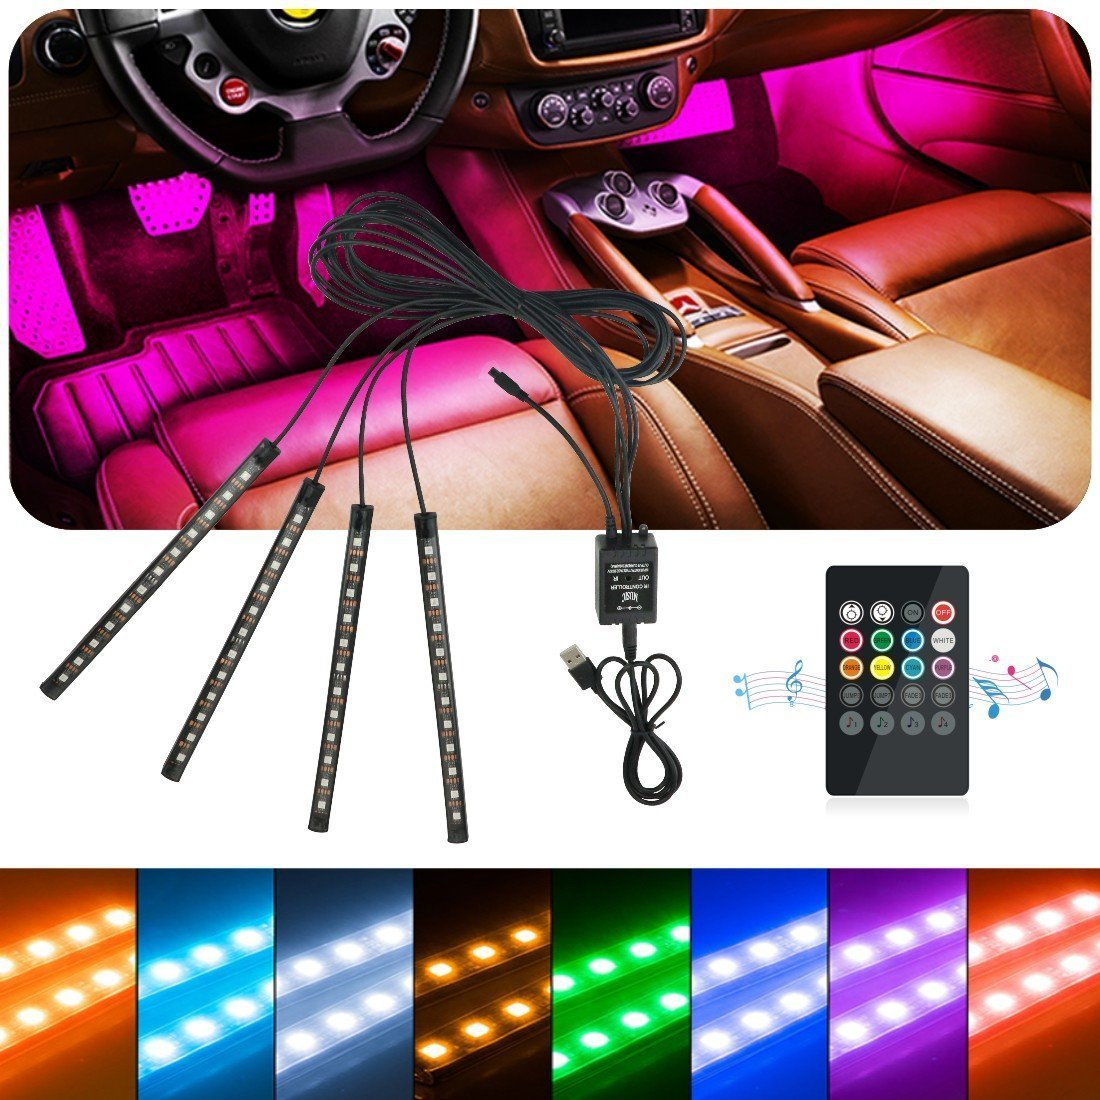 Idefair(TM) Car LED Strip Interior Light,48LEDs Multicolor Waterproof Music Car Interior Underdash Lighting Kit for Truck Van Lorry Motorcycle,with Sound Active Function,Wireless Remote